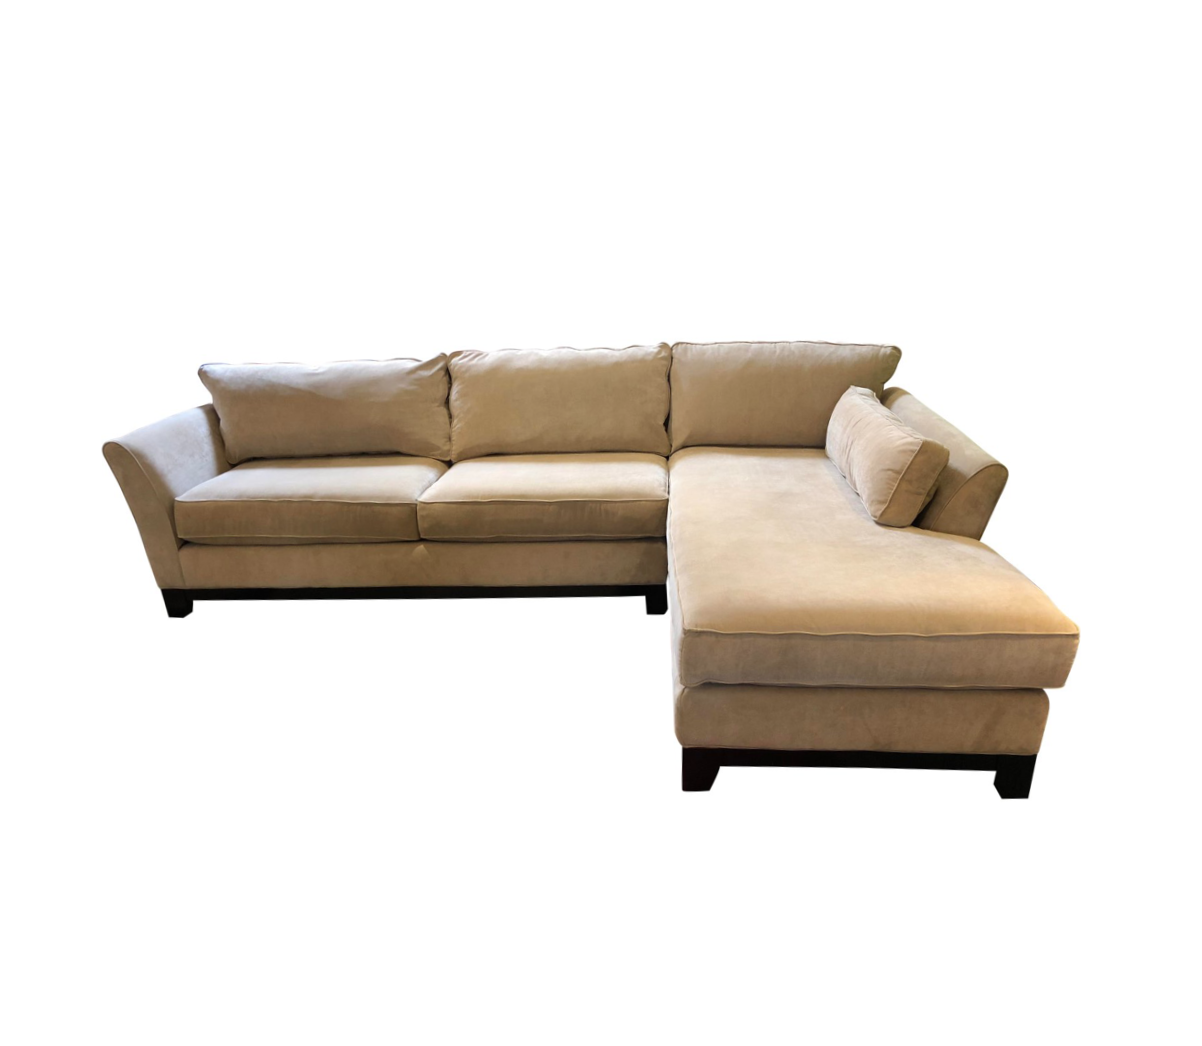 Two Piece Beige Sectional Sofa Original Price 2 700 00